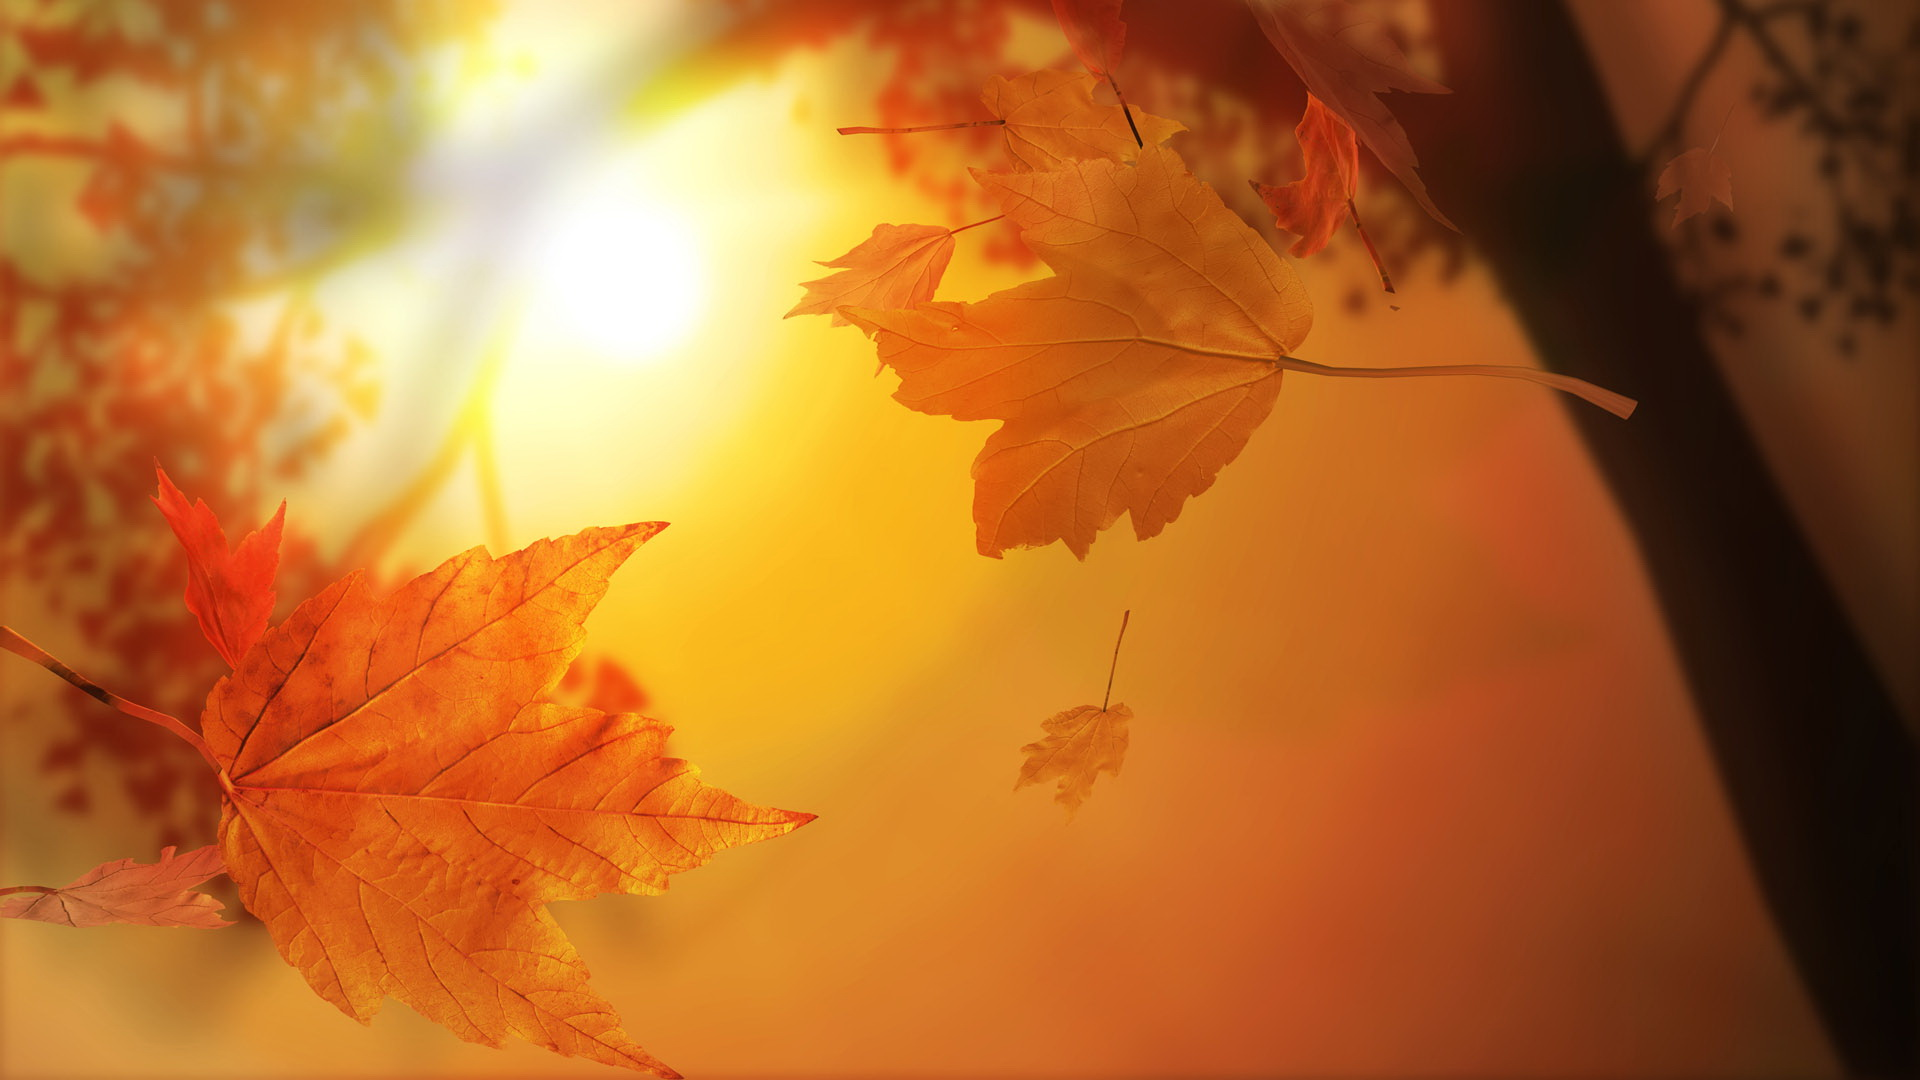 click to free download the wallpaper--Free Download Natural Scenery Picture - Maple Leaves Are Falling, the Rising Sun, Beautiful and Romantic Scene 1920X1080 free wallpaper download